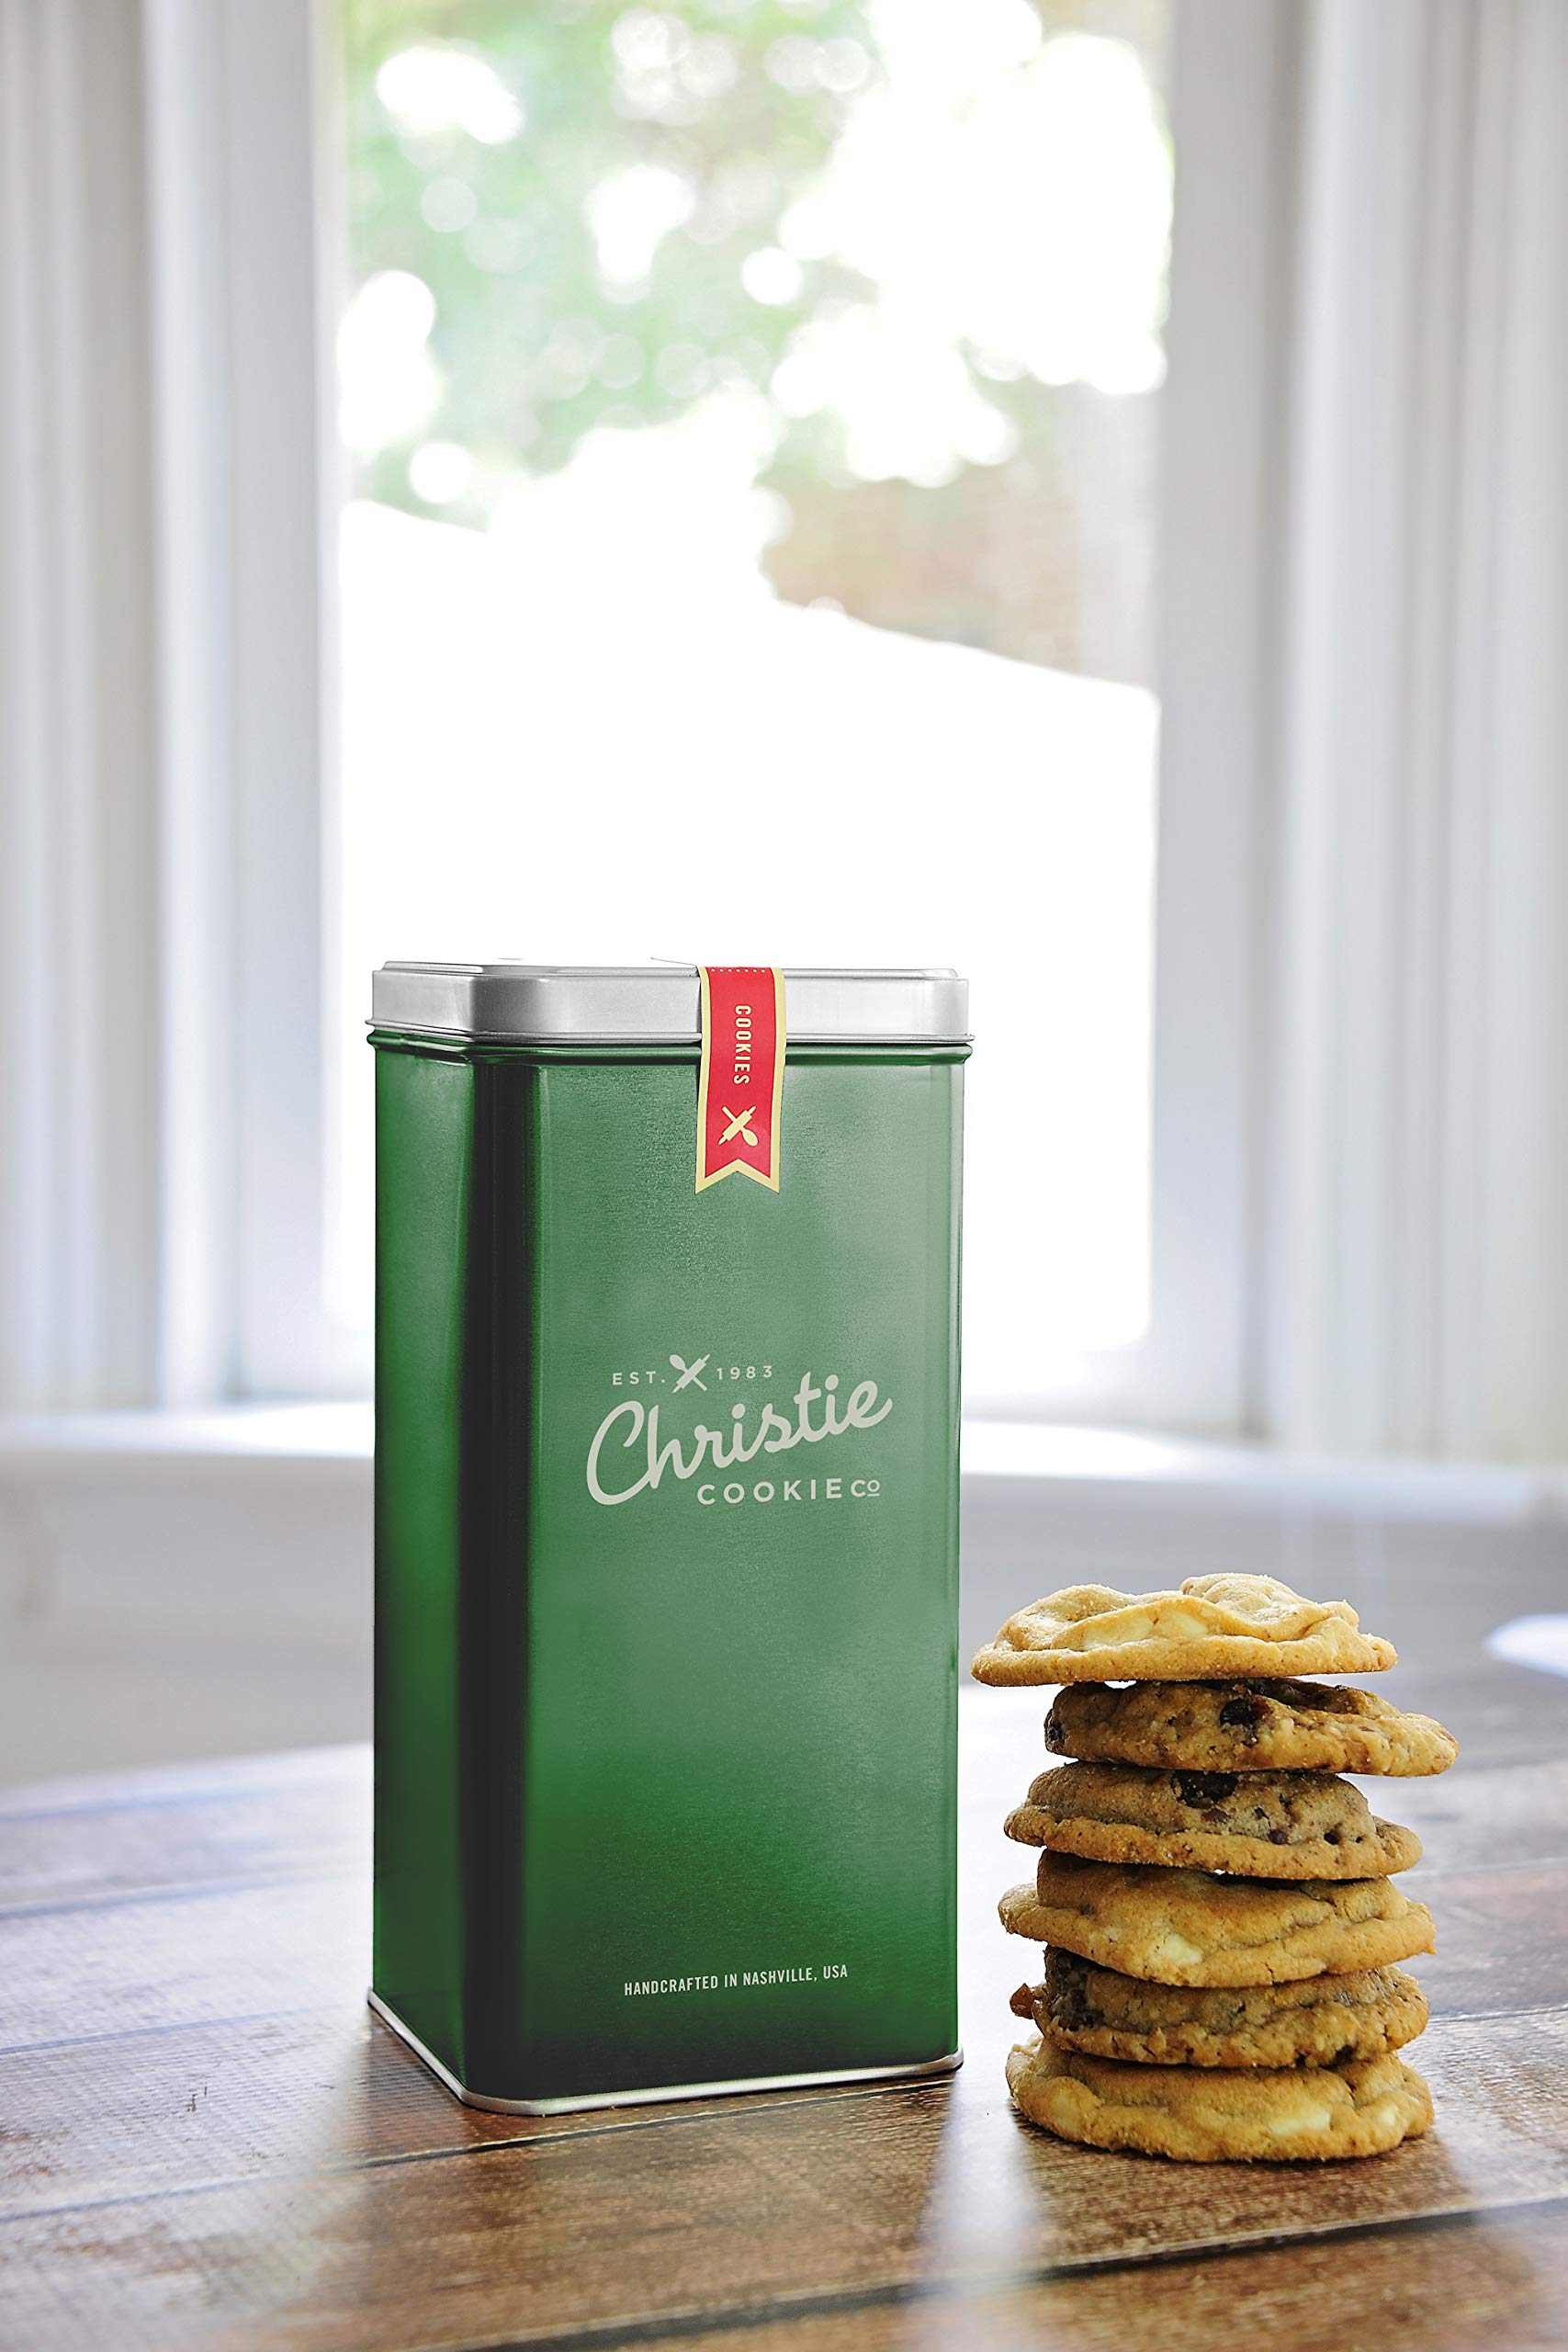 Christie Cookies, Gourmet Assorted Cookies, 12 Fresh-Baked Cookies in Green Tin, No Added Preservatives, 100% Real Butter, Holiday & Corporate Gift Tin, Birthday Gift Idea for Men & Women